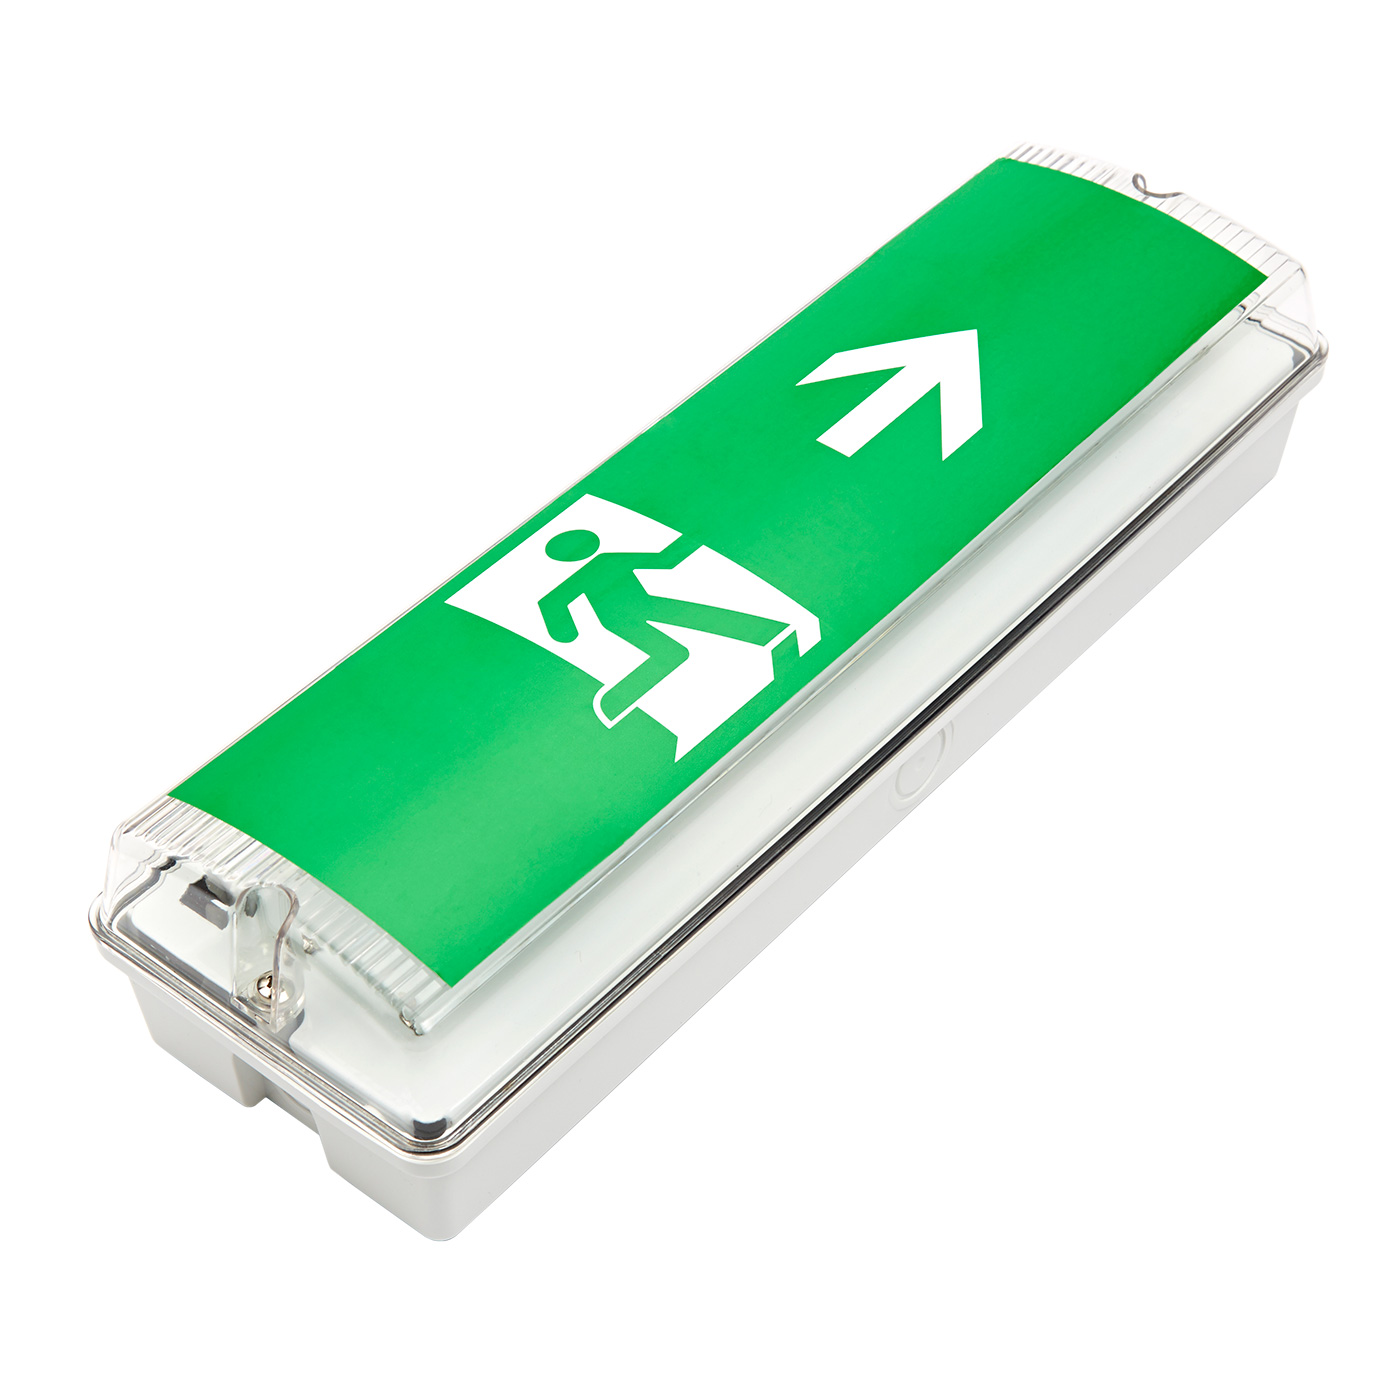 Biard LED 7.5W Emergency Bulkhead Exit Sign Maintained/Non-Maintained - Right Arrow